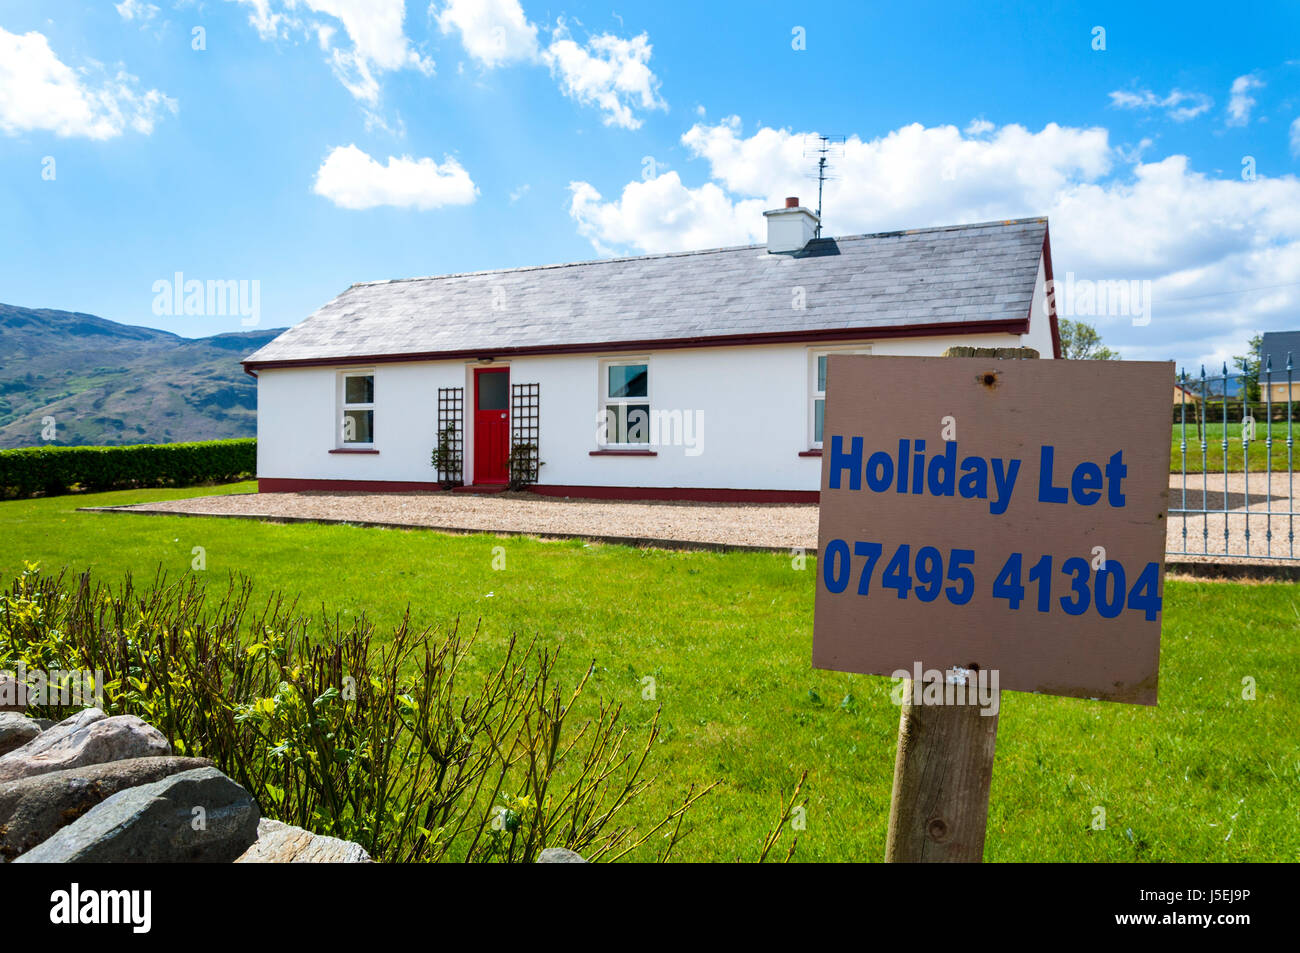 Holiday cottage to let sign, Loughros Point, Ardara, County Donegal, Ireland - Stock Image